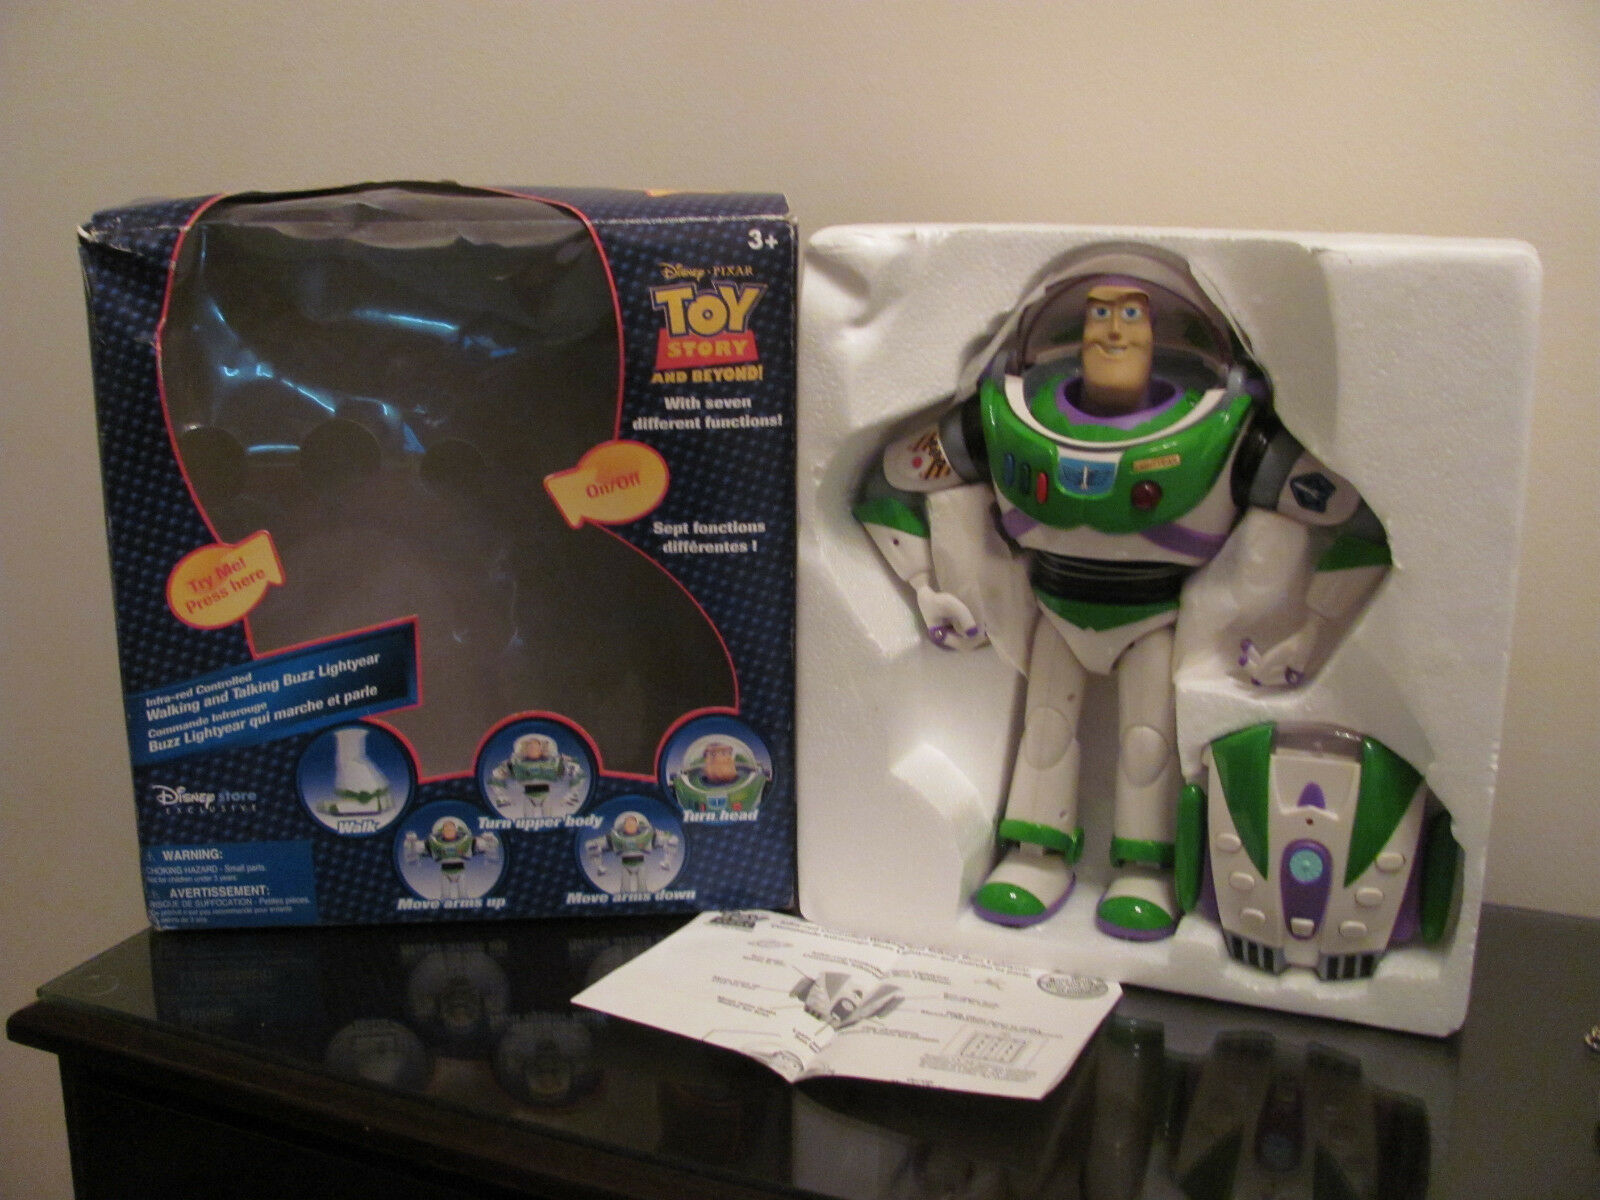 LARGE 13  FIGURE TOY STORY INFRA RED CONTROLLED BUZZ LIGHTYEAR WALKING TALKING